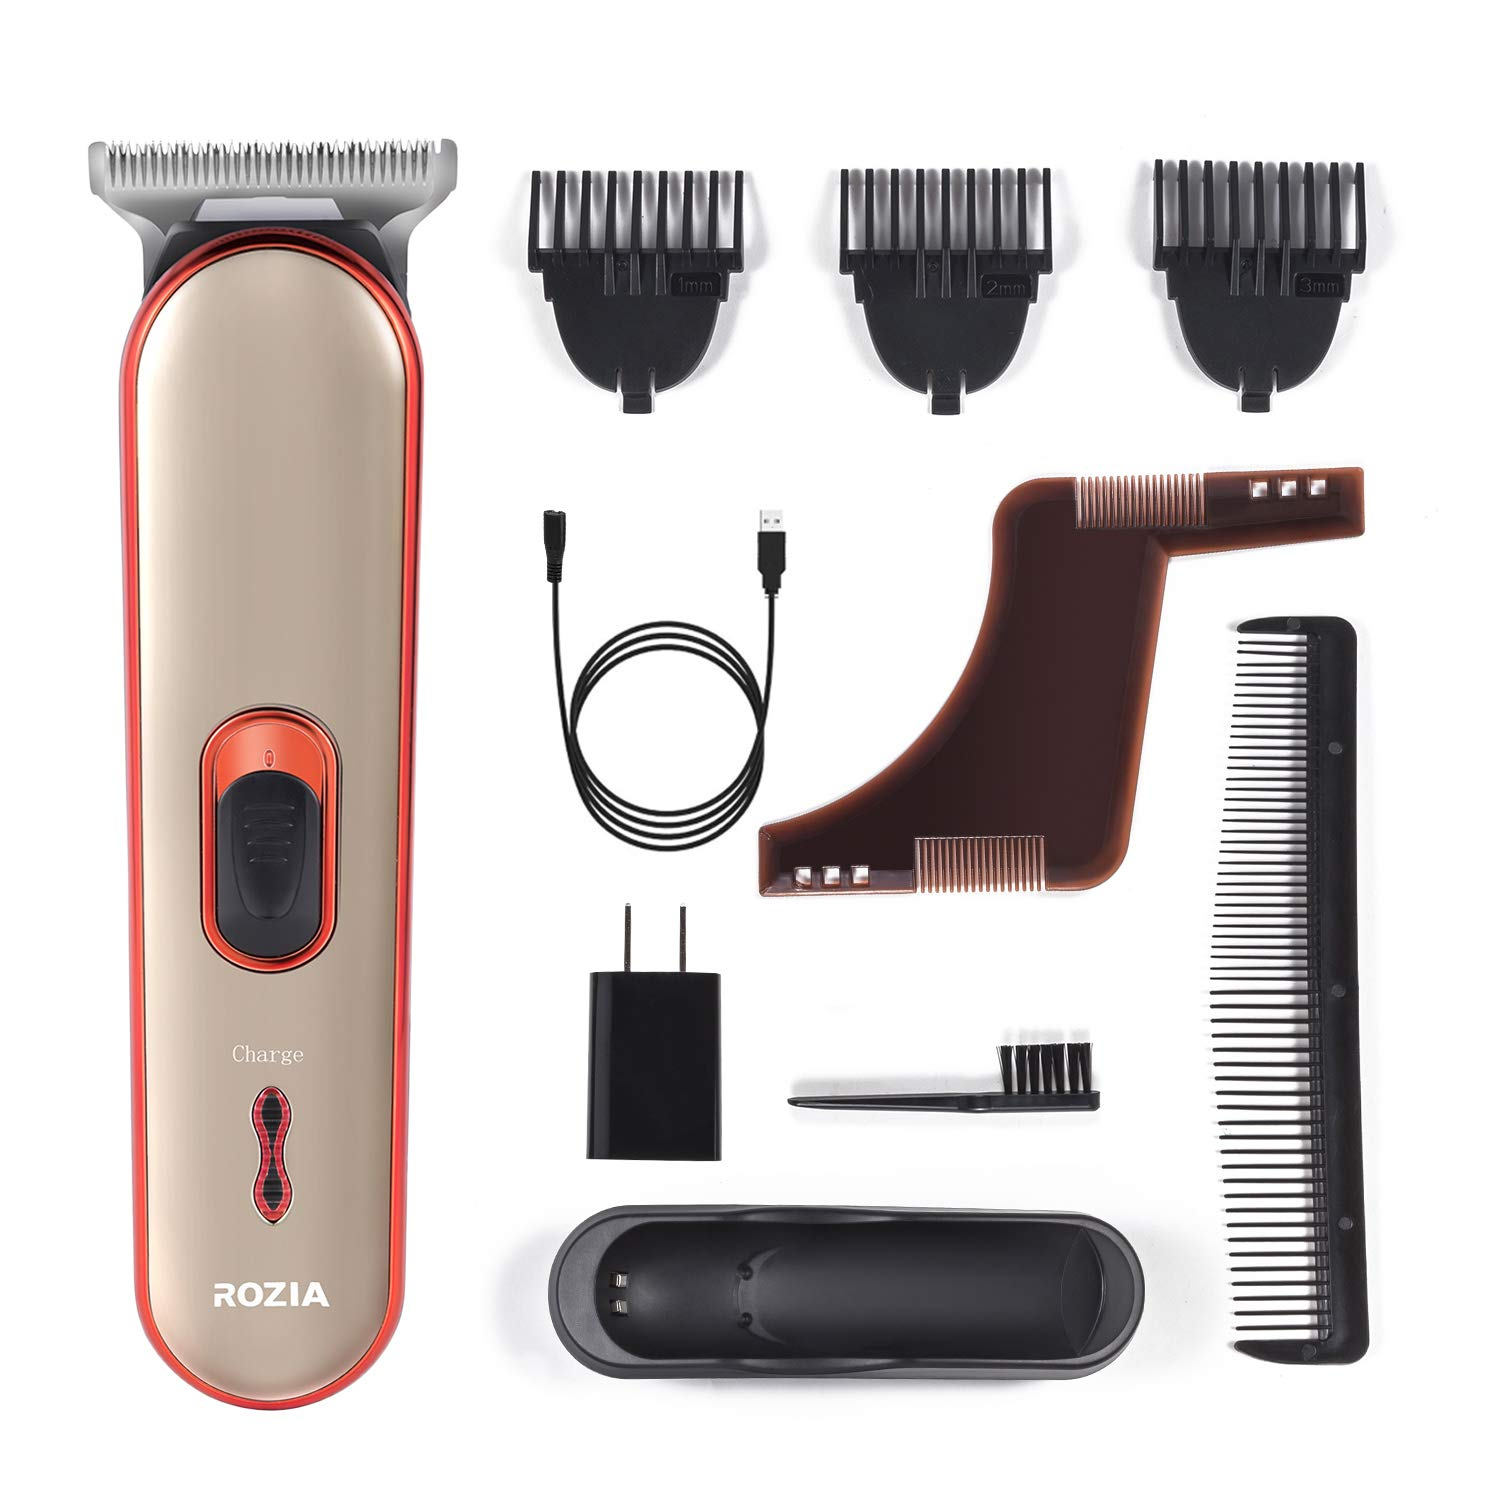 Beard Trimmer Hair Clippers Electric Razor For Men Mustache & Beard Groomer hair trimmer cordless clippers Precision Dial Portable USB charging cable